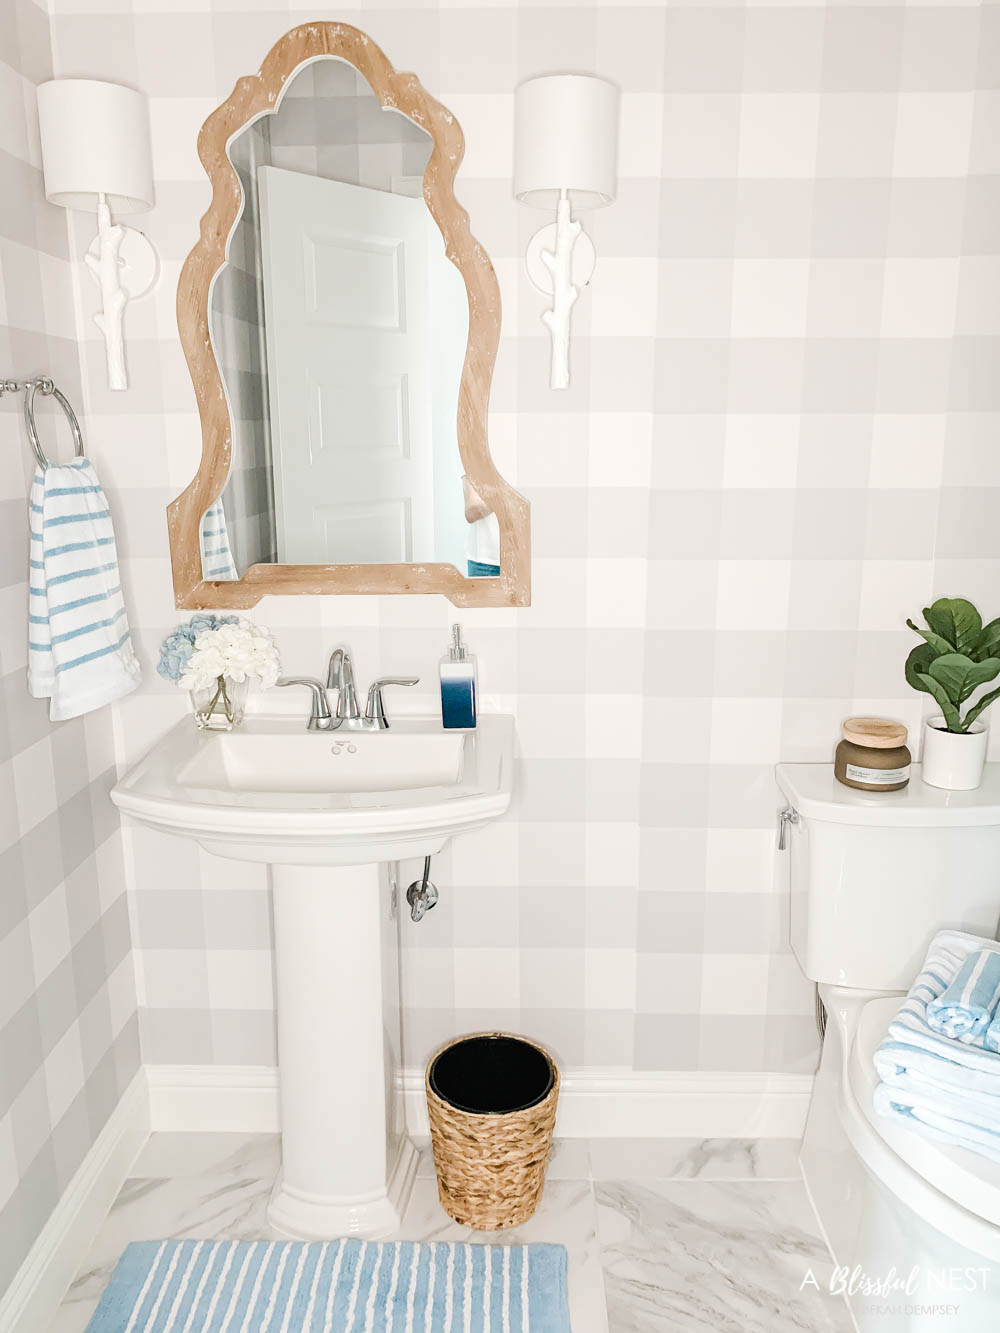 Bathroom Update + Fall Finds with Walmart